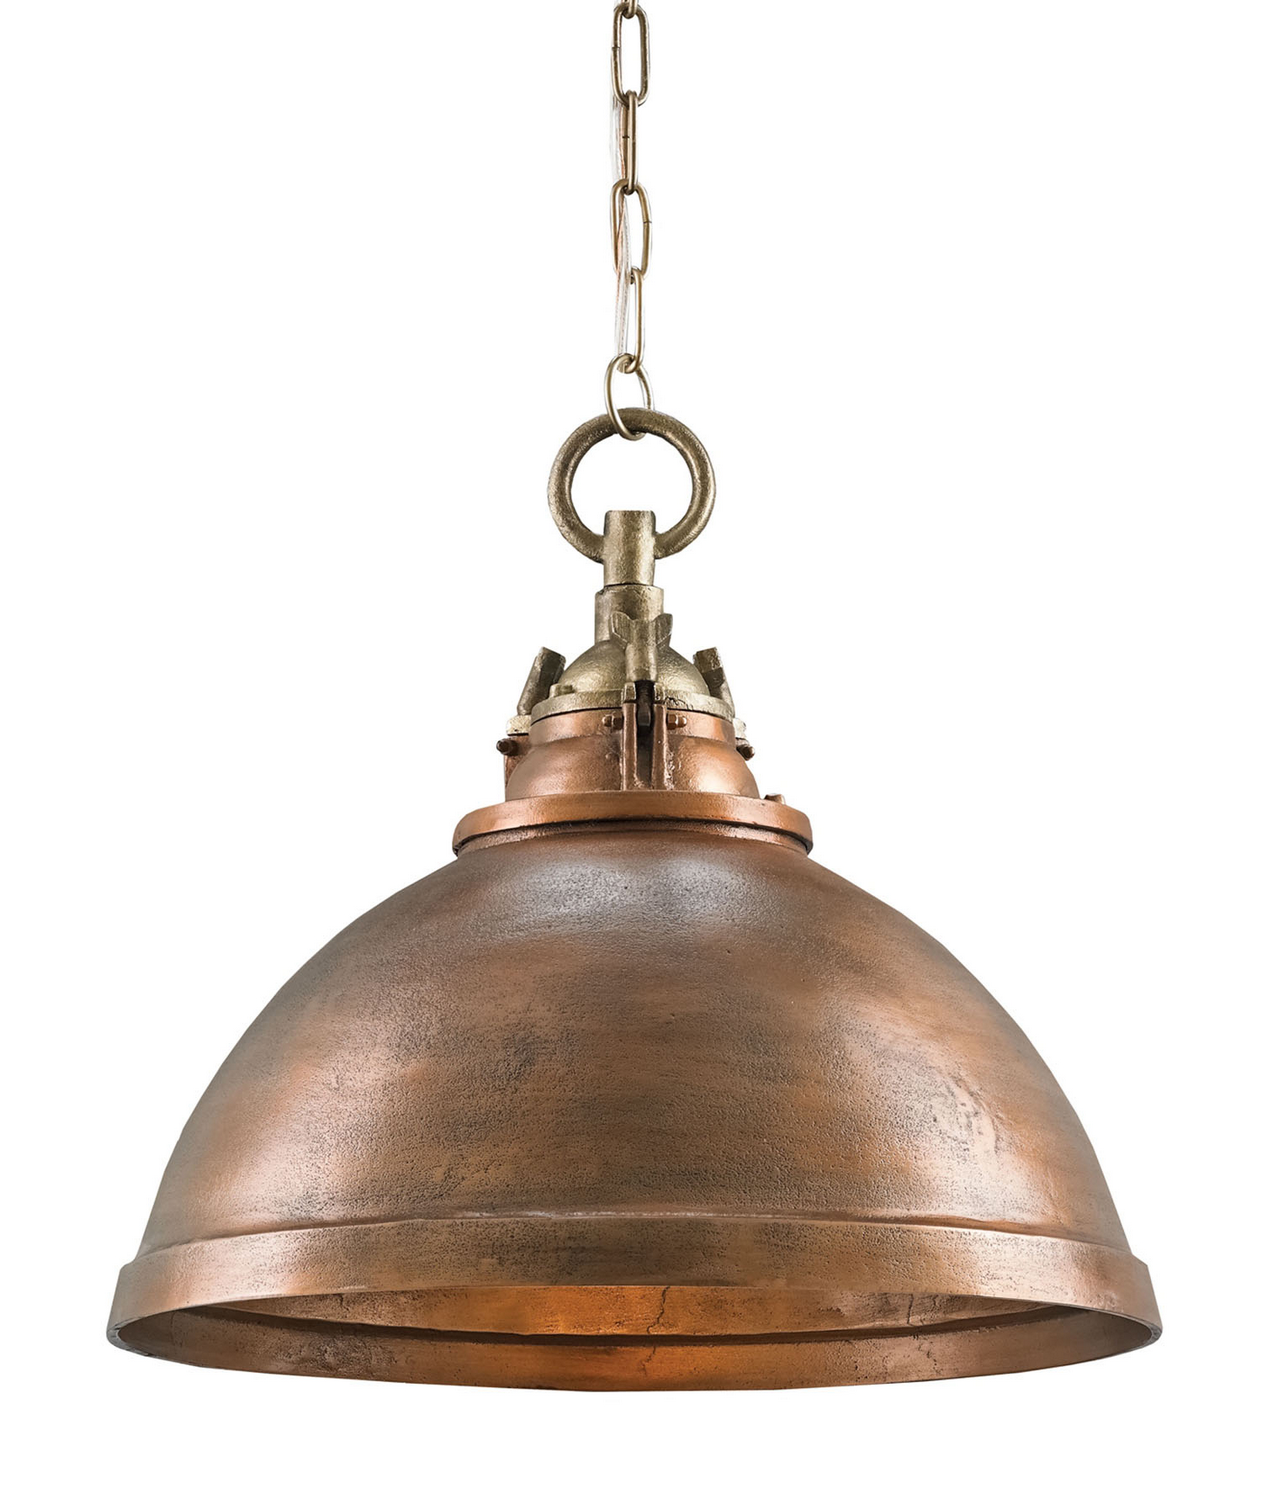 Copper Lighting Pendant Best Copper Kitchen Pendants Reviews Ratings Prices